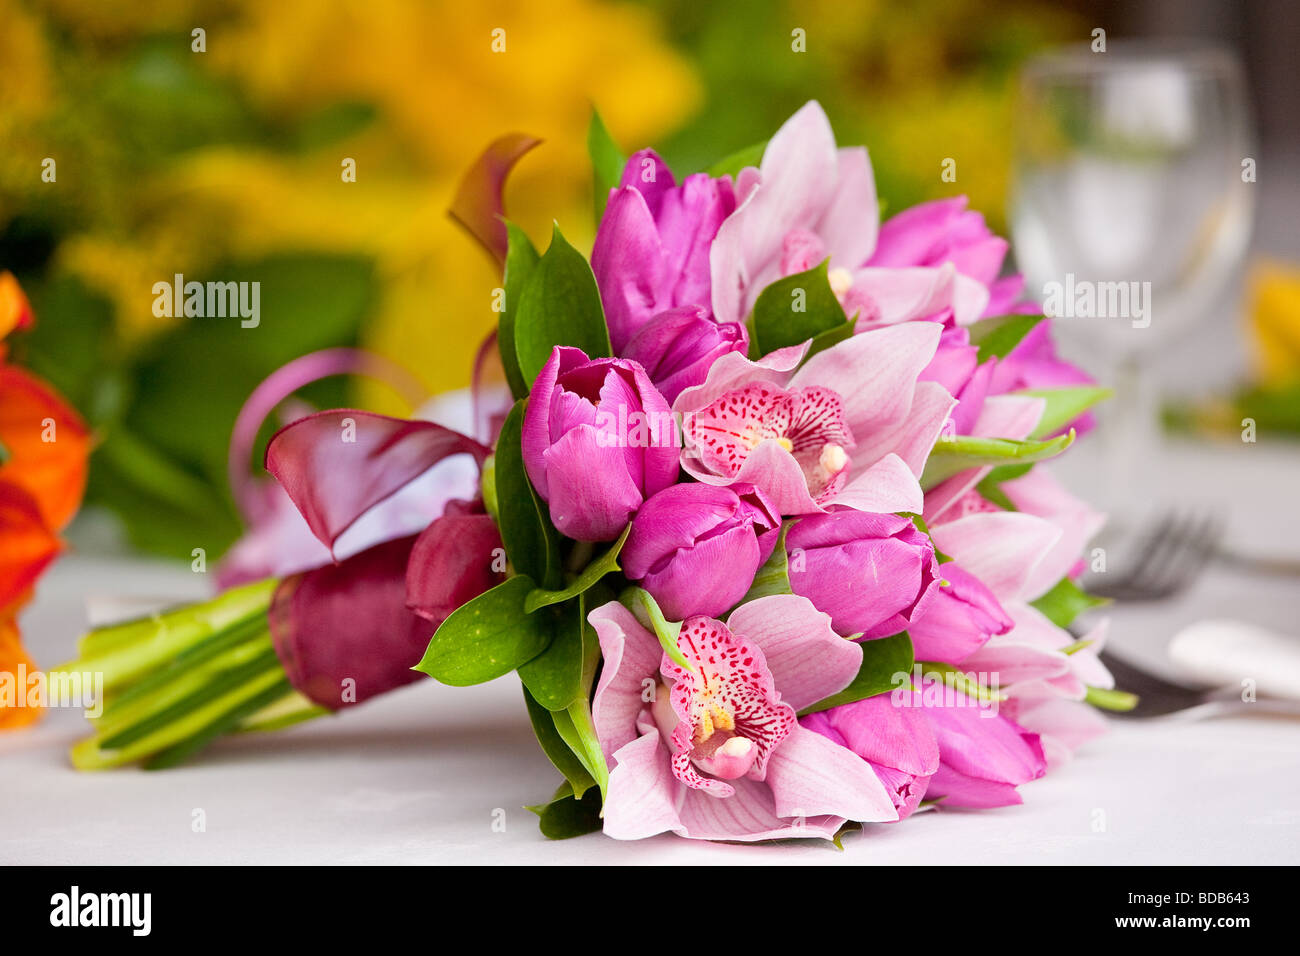 Wedding flowers in a bouquet made up of tulips and orchids stock wedding flowers in a bouquet made up of tulips and orchids izmirmasajfo